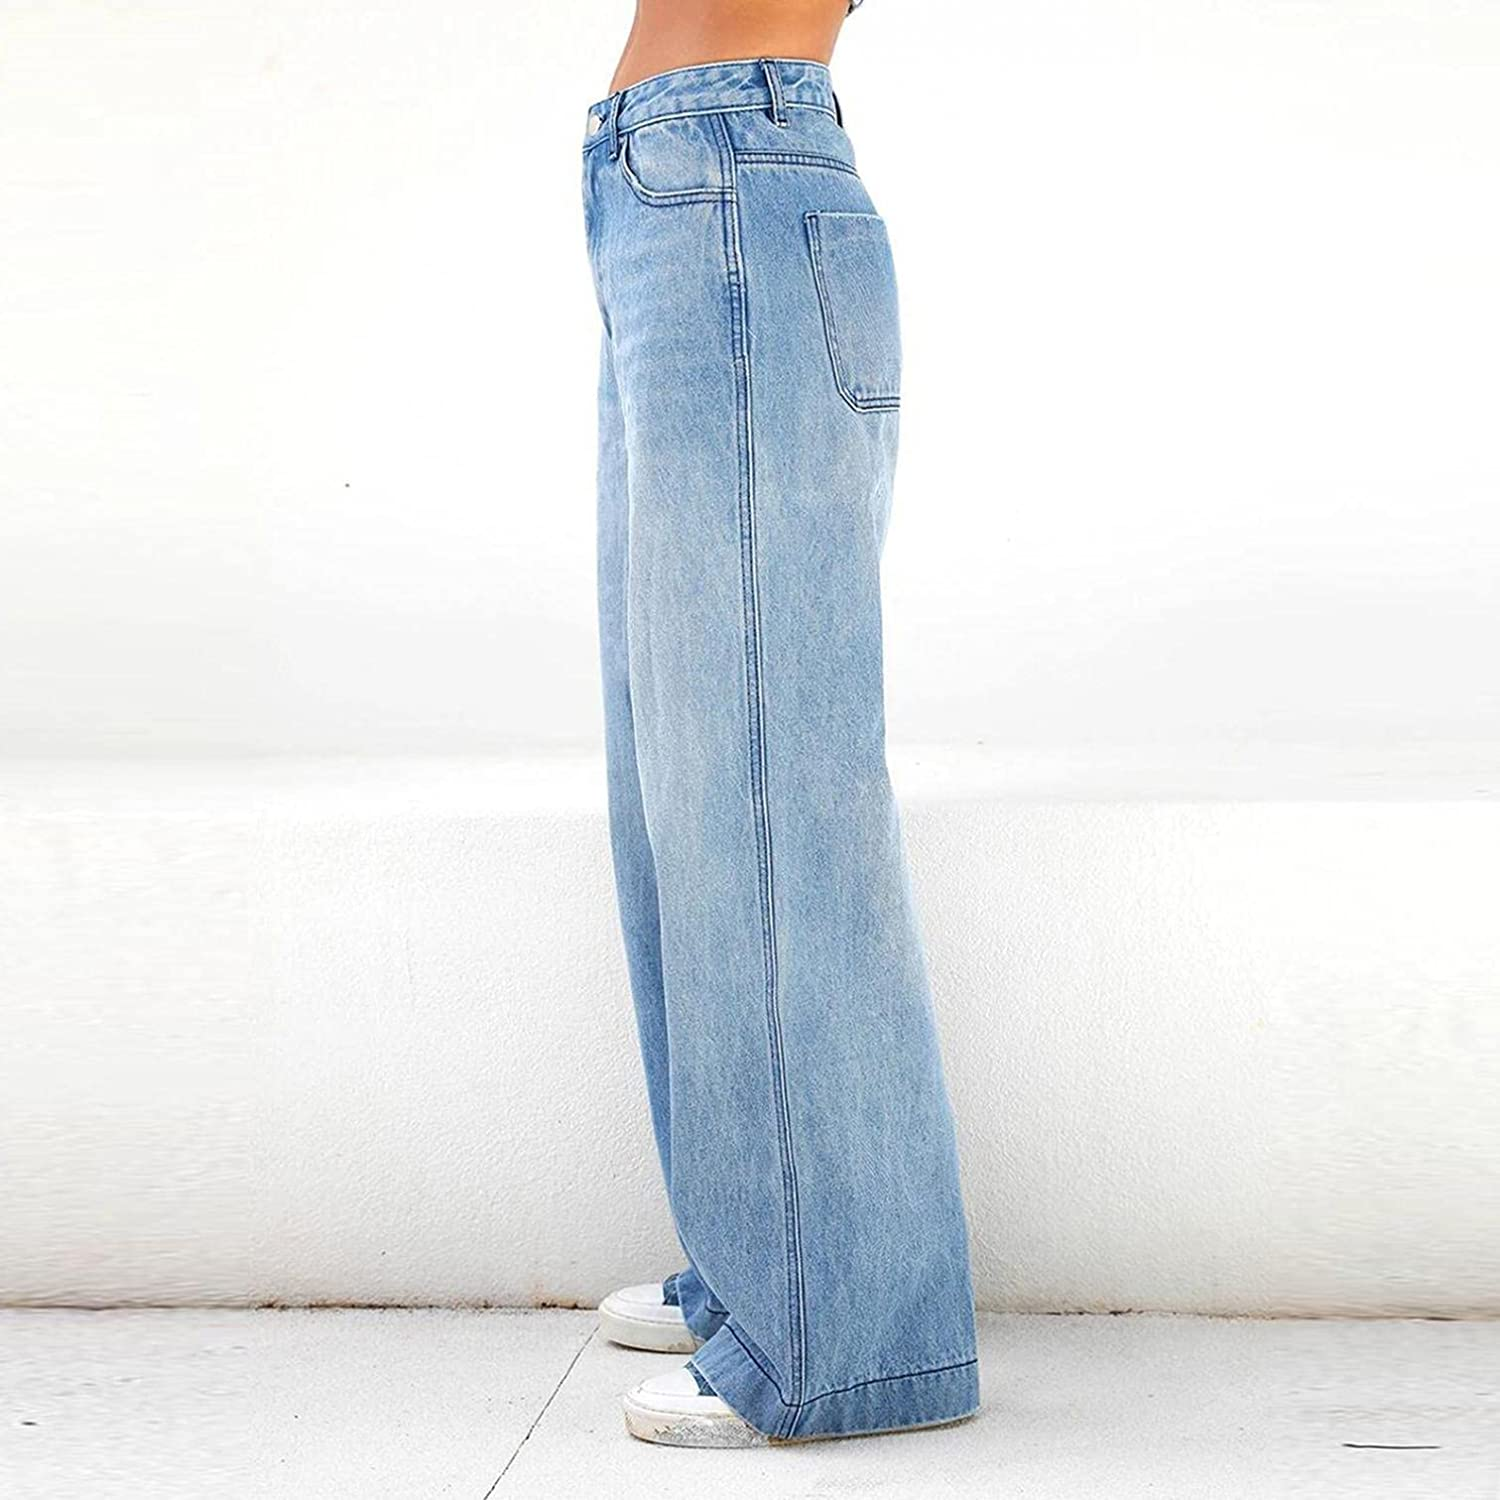 Lingbing Y2K Fashion Jeans, Women Wide Leg Pants Casual Baggy Trousers Embroidered Printing Jeans Denim Pants Streetwear